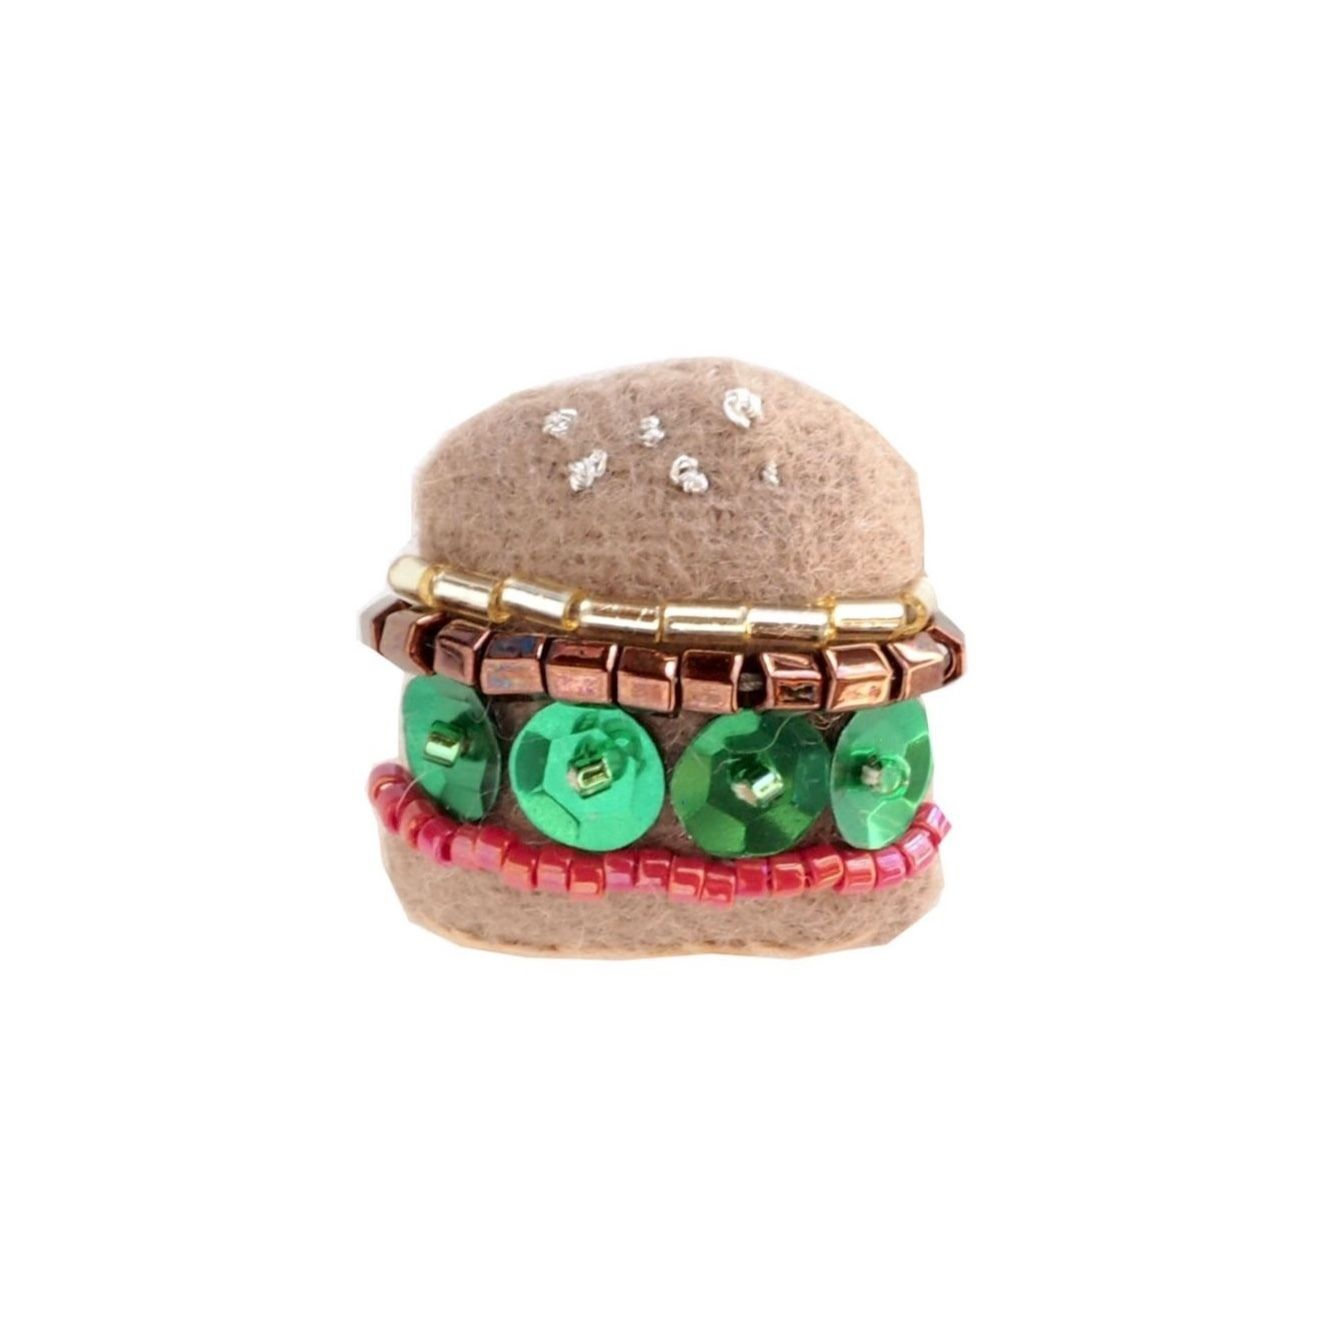 Miniature Hamburger Brooch